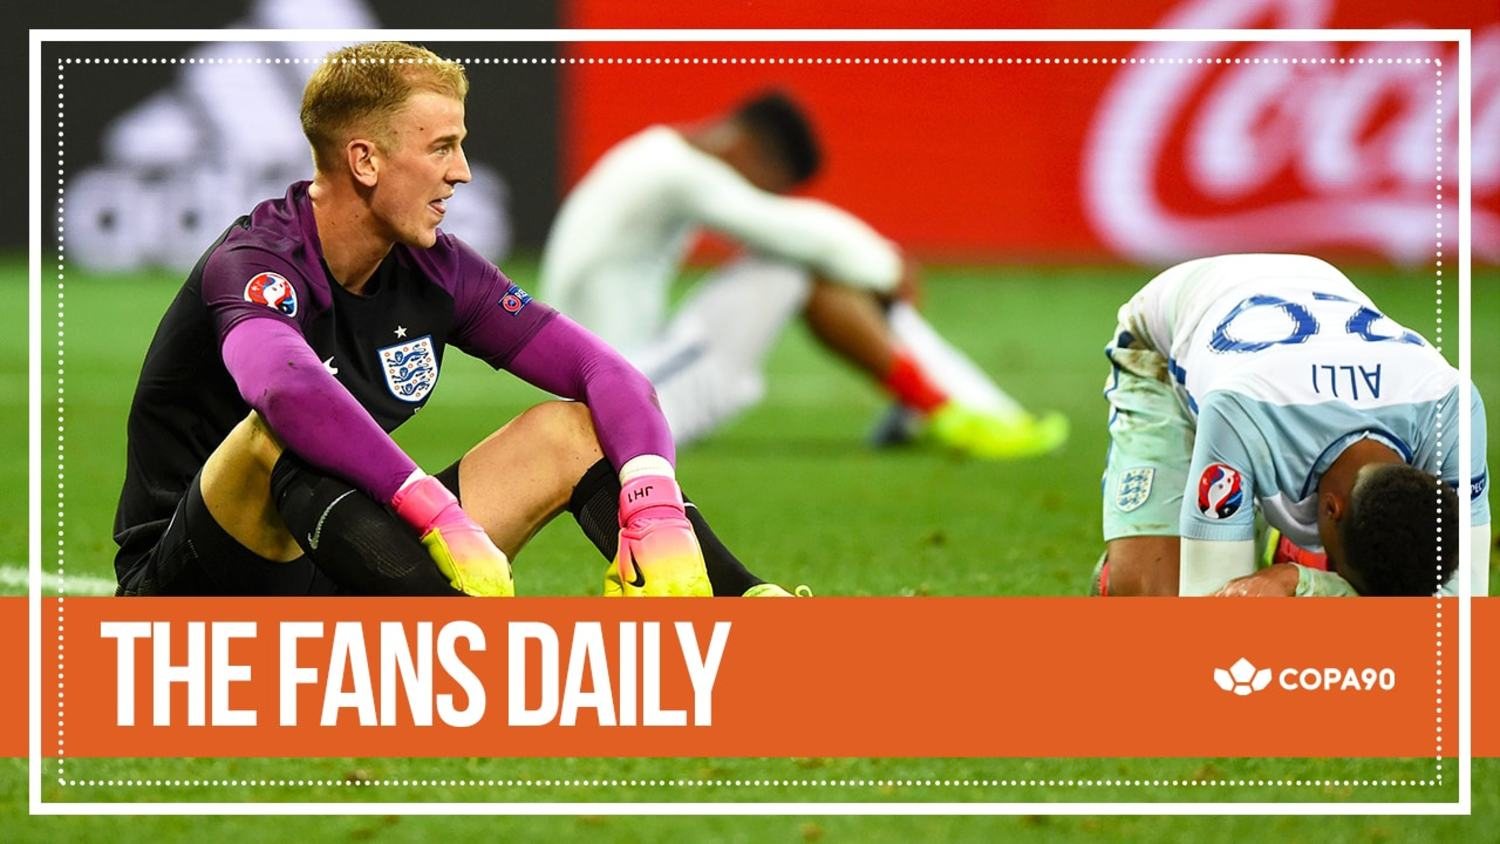 Biggest Shock In Euros History | The Fans Daily